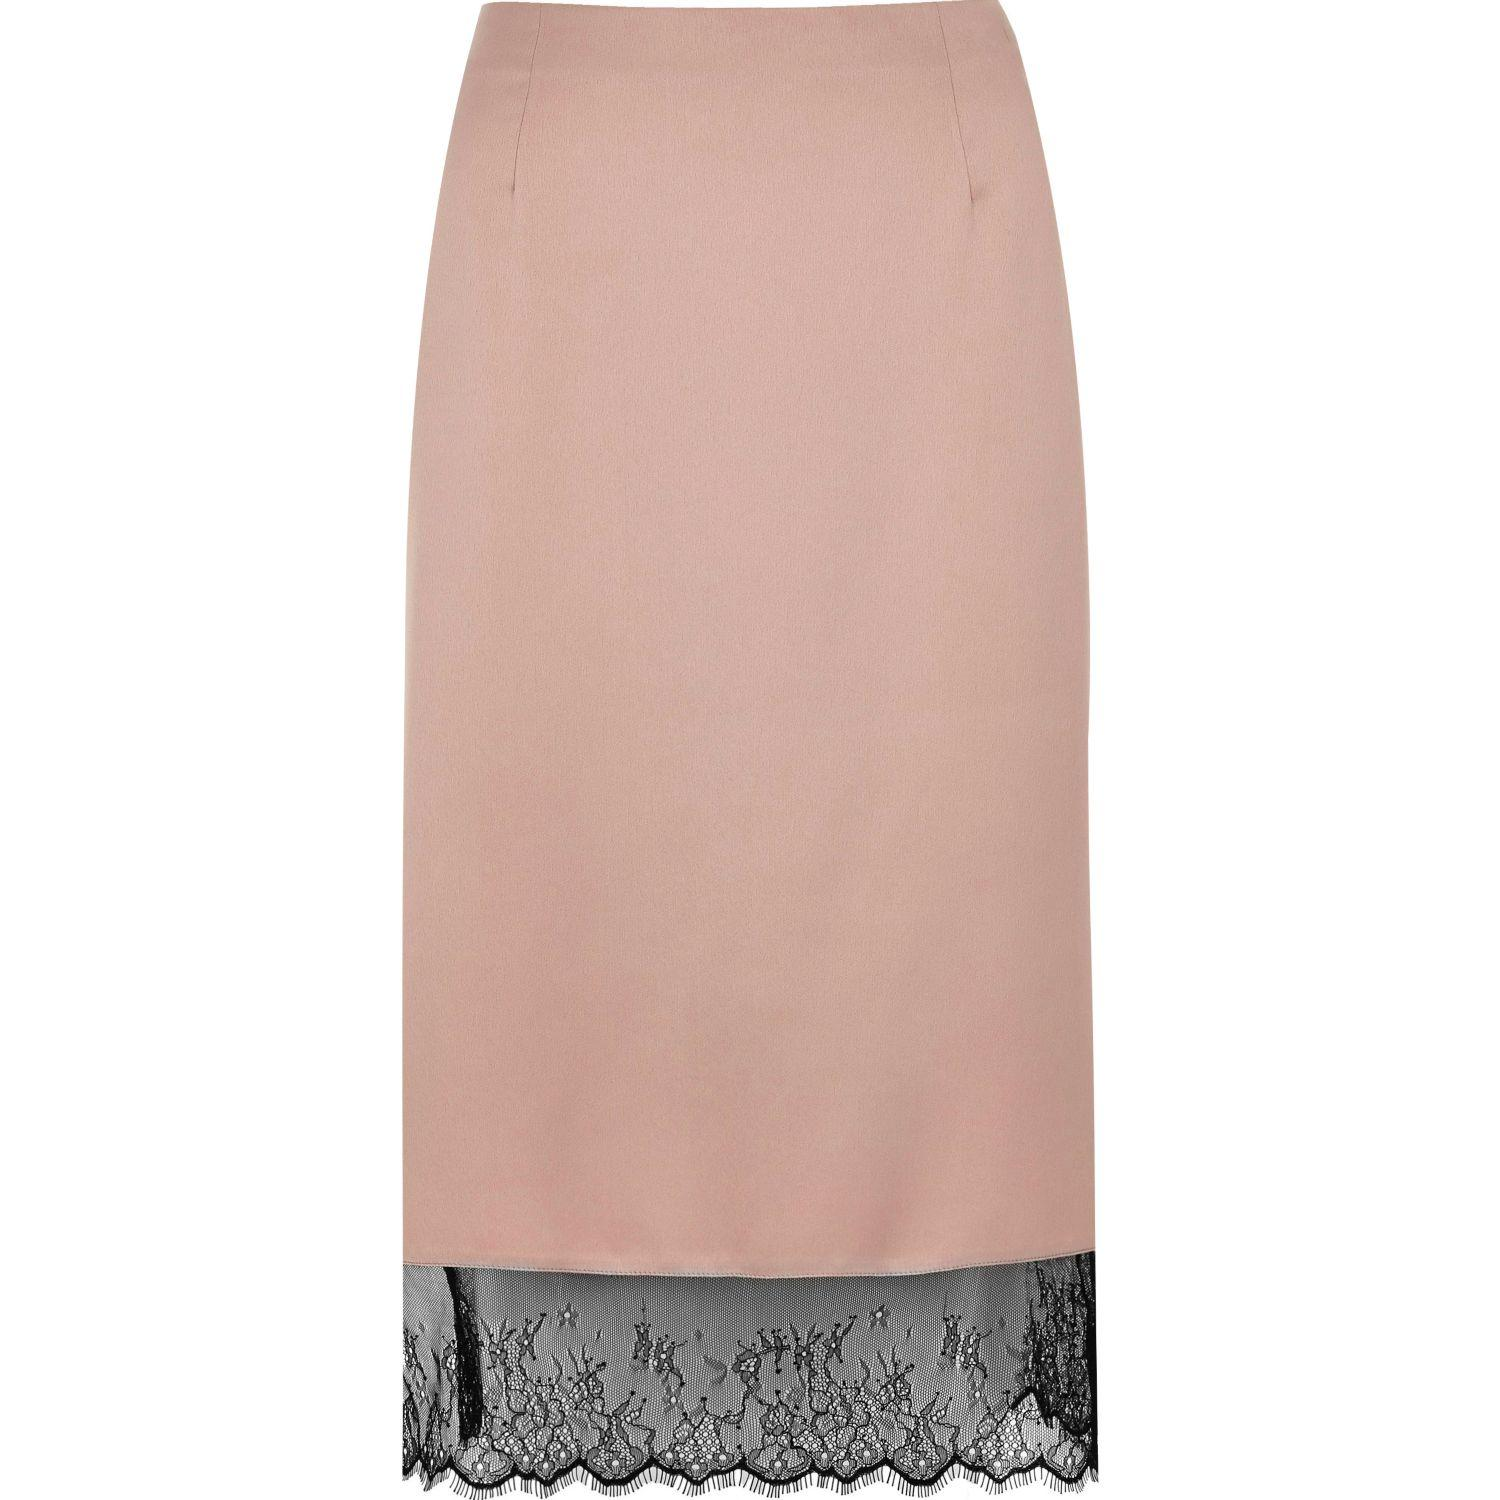 River Island Light Pink Lace Pencil Skirt